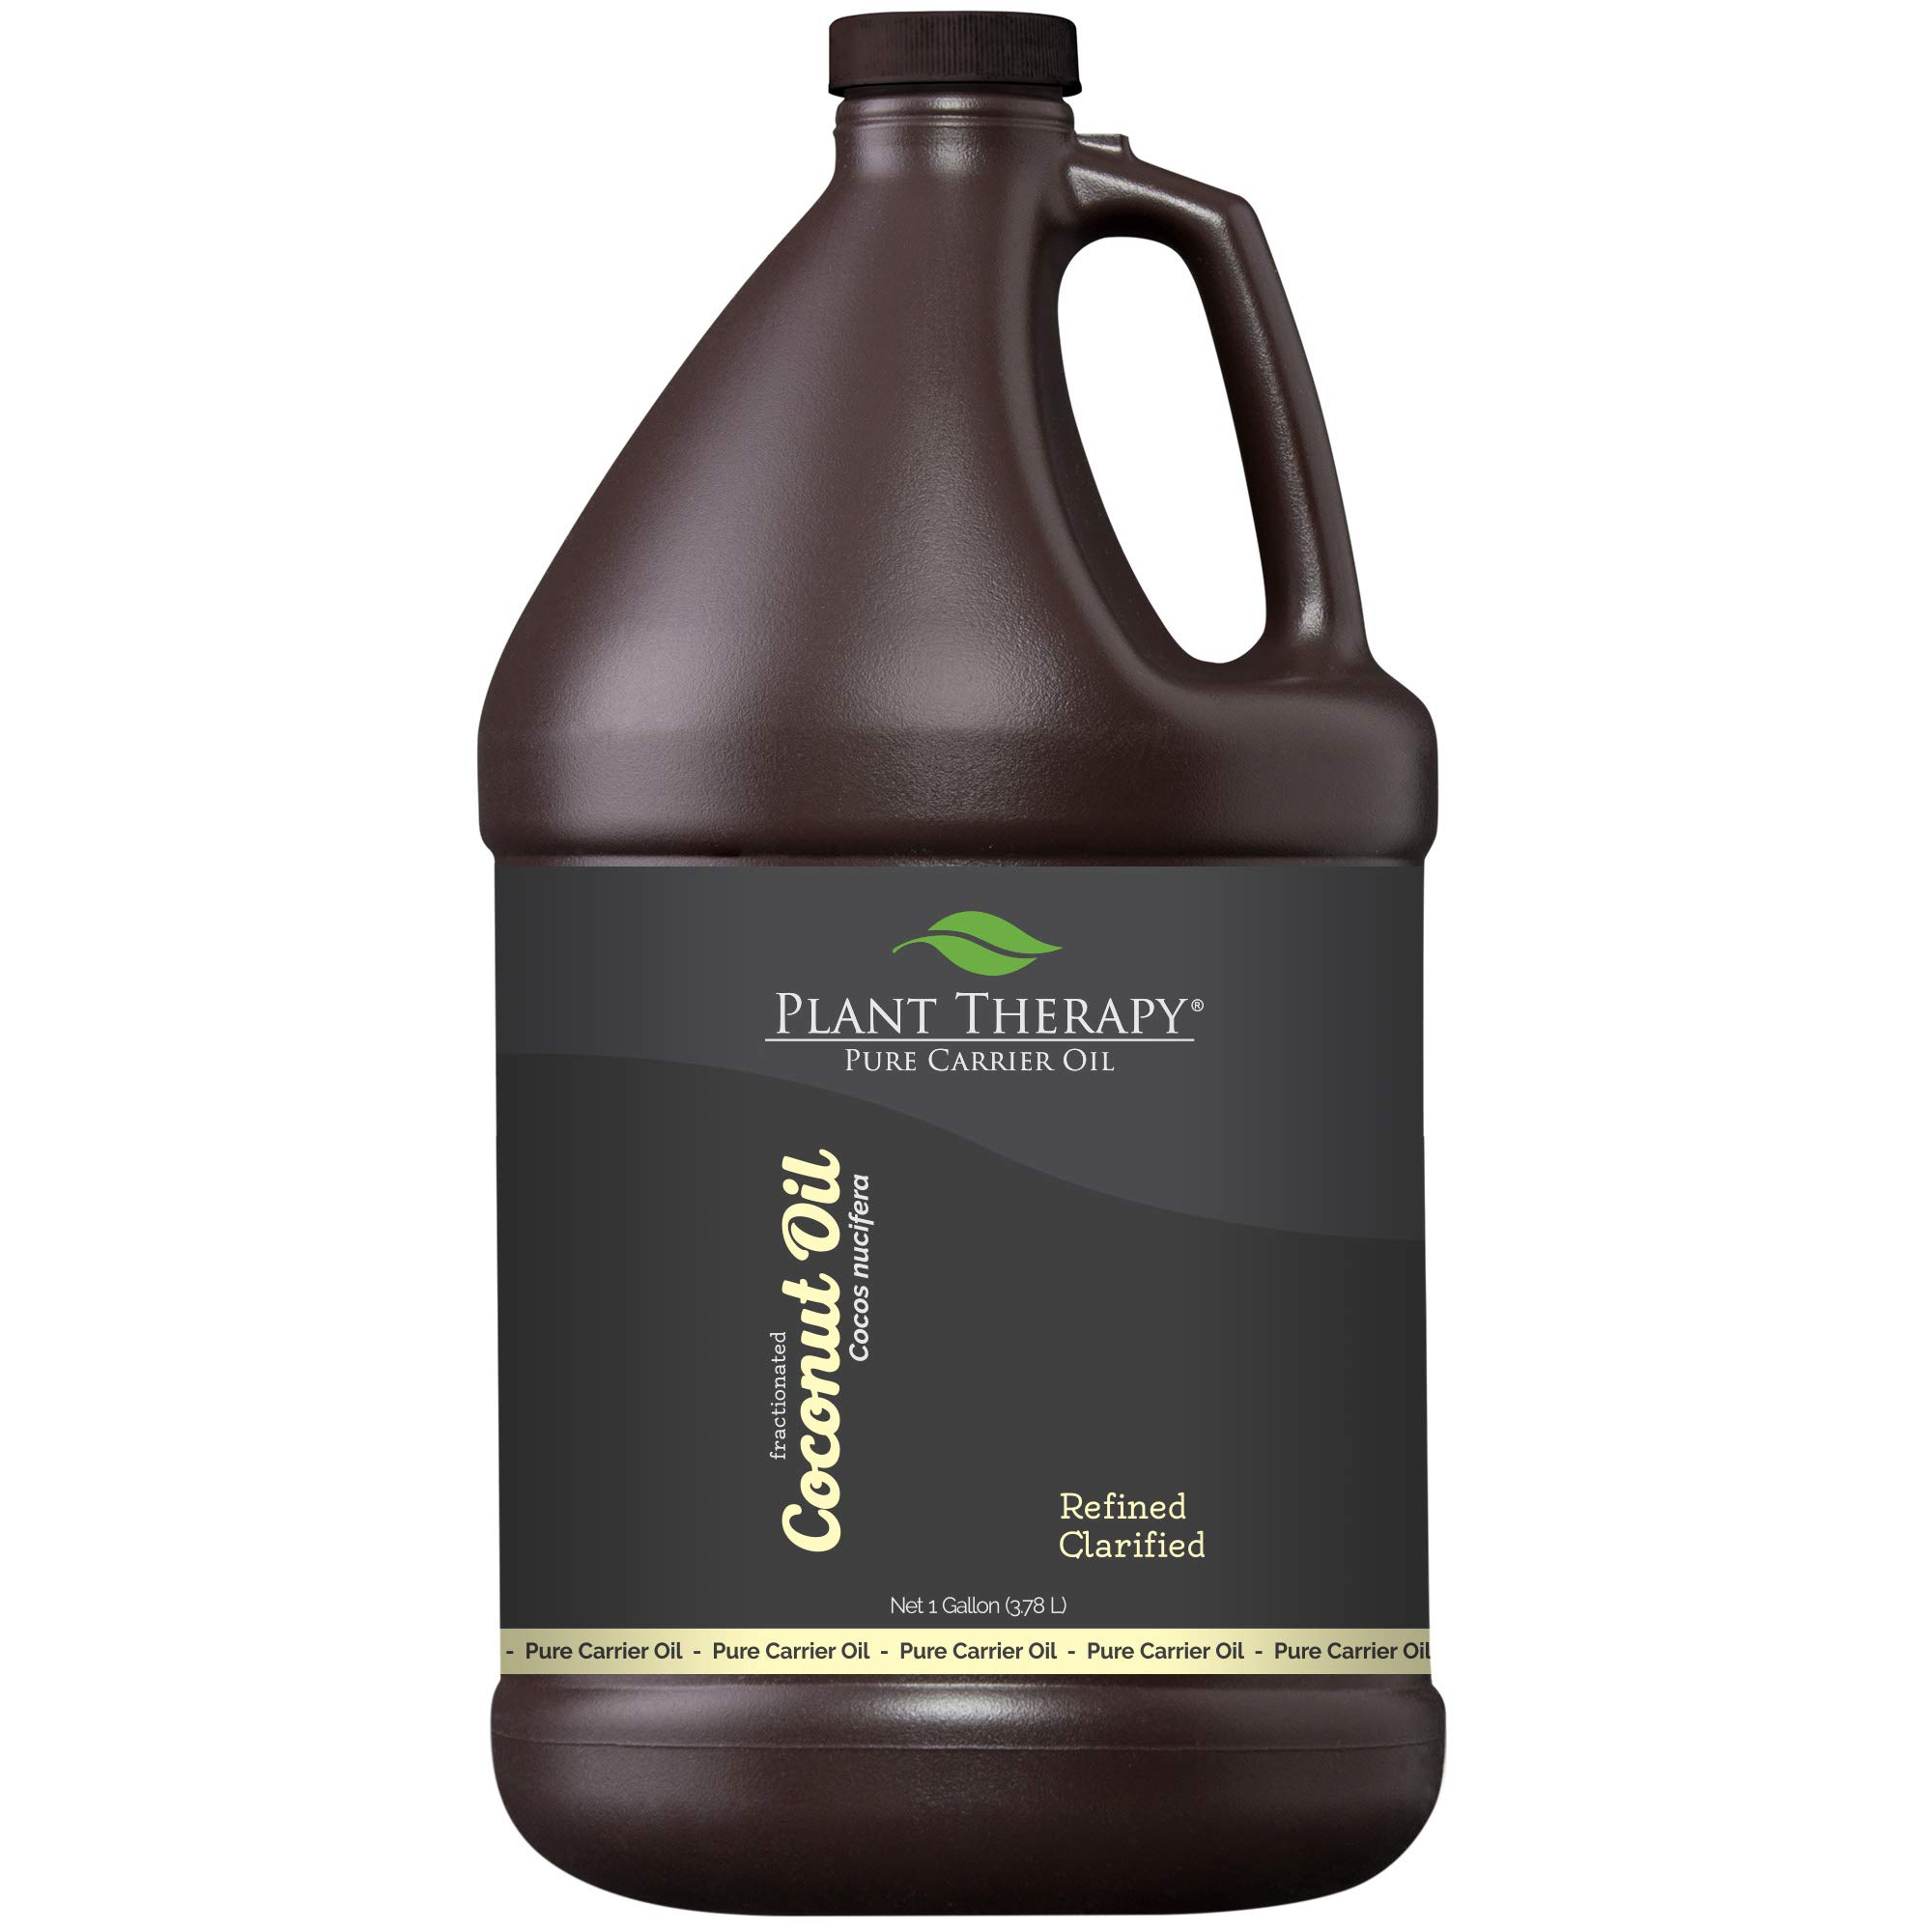 Plant Therapy Coconut (Fractionated) Carrier Oil. A Base Oil for Aromatherapy, Essential Oil or Massage use. 1 Gallon.